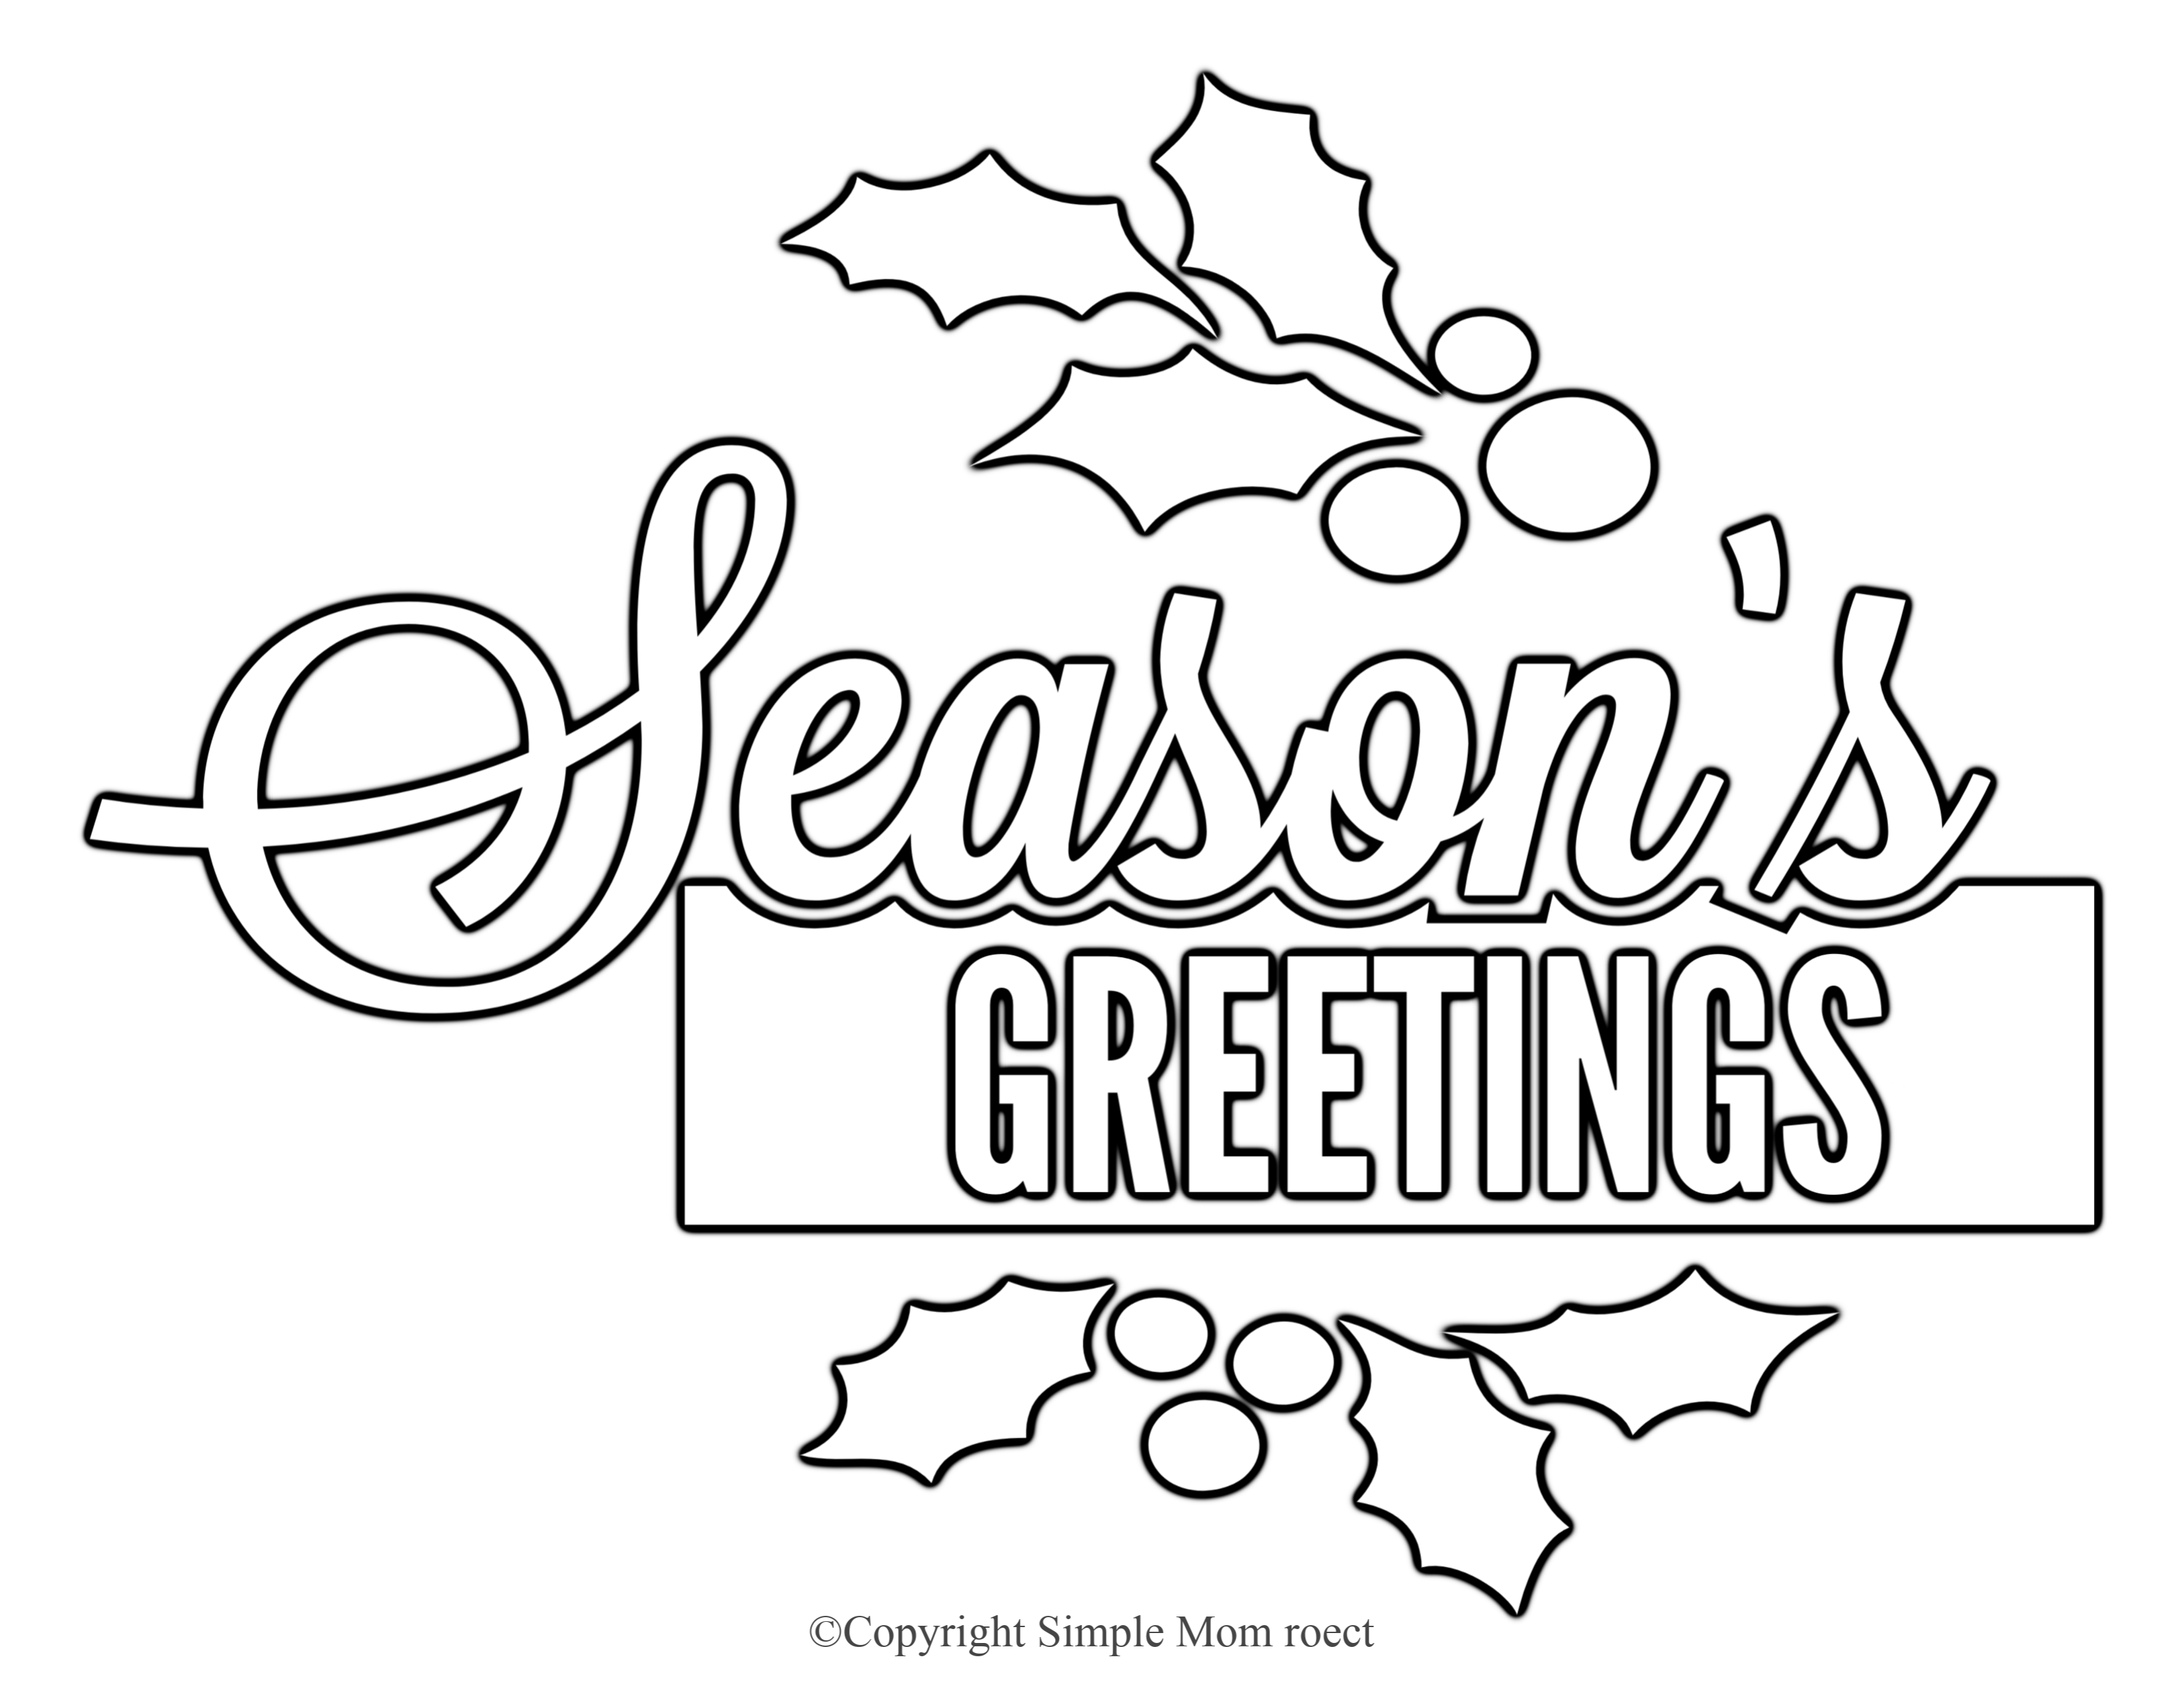 Click Now To Print These Cute Free Christmas Coloring Pages And Shee Free Christmas Coloring Pages Printable Christmas Coloring Pages Christmas Coloring Pages